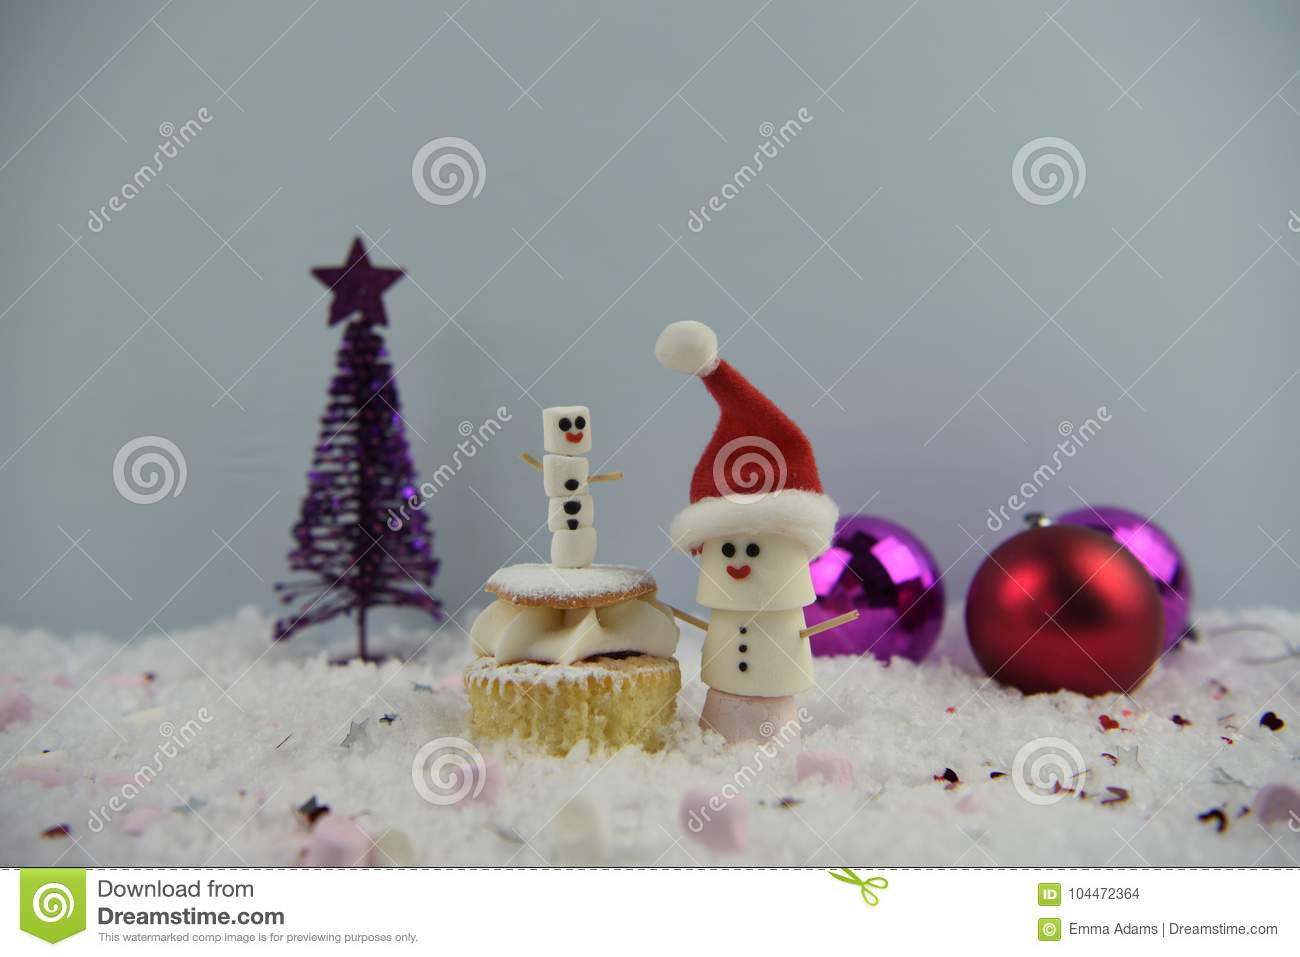 download christmas food photography using marshmallows shaped as snowman and standing in snow with cream sponge